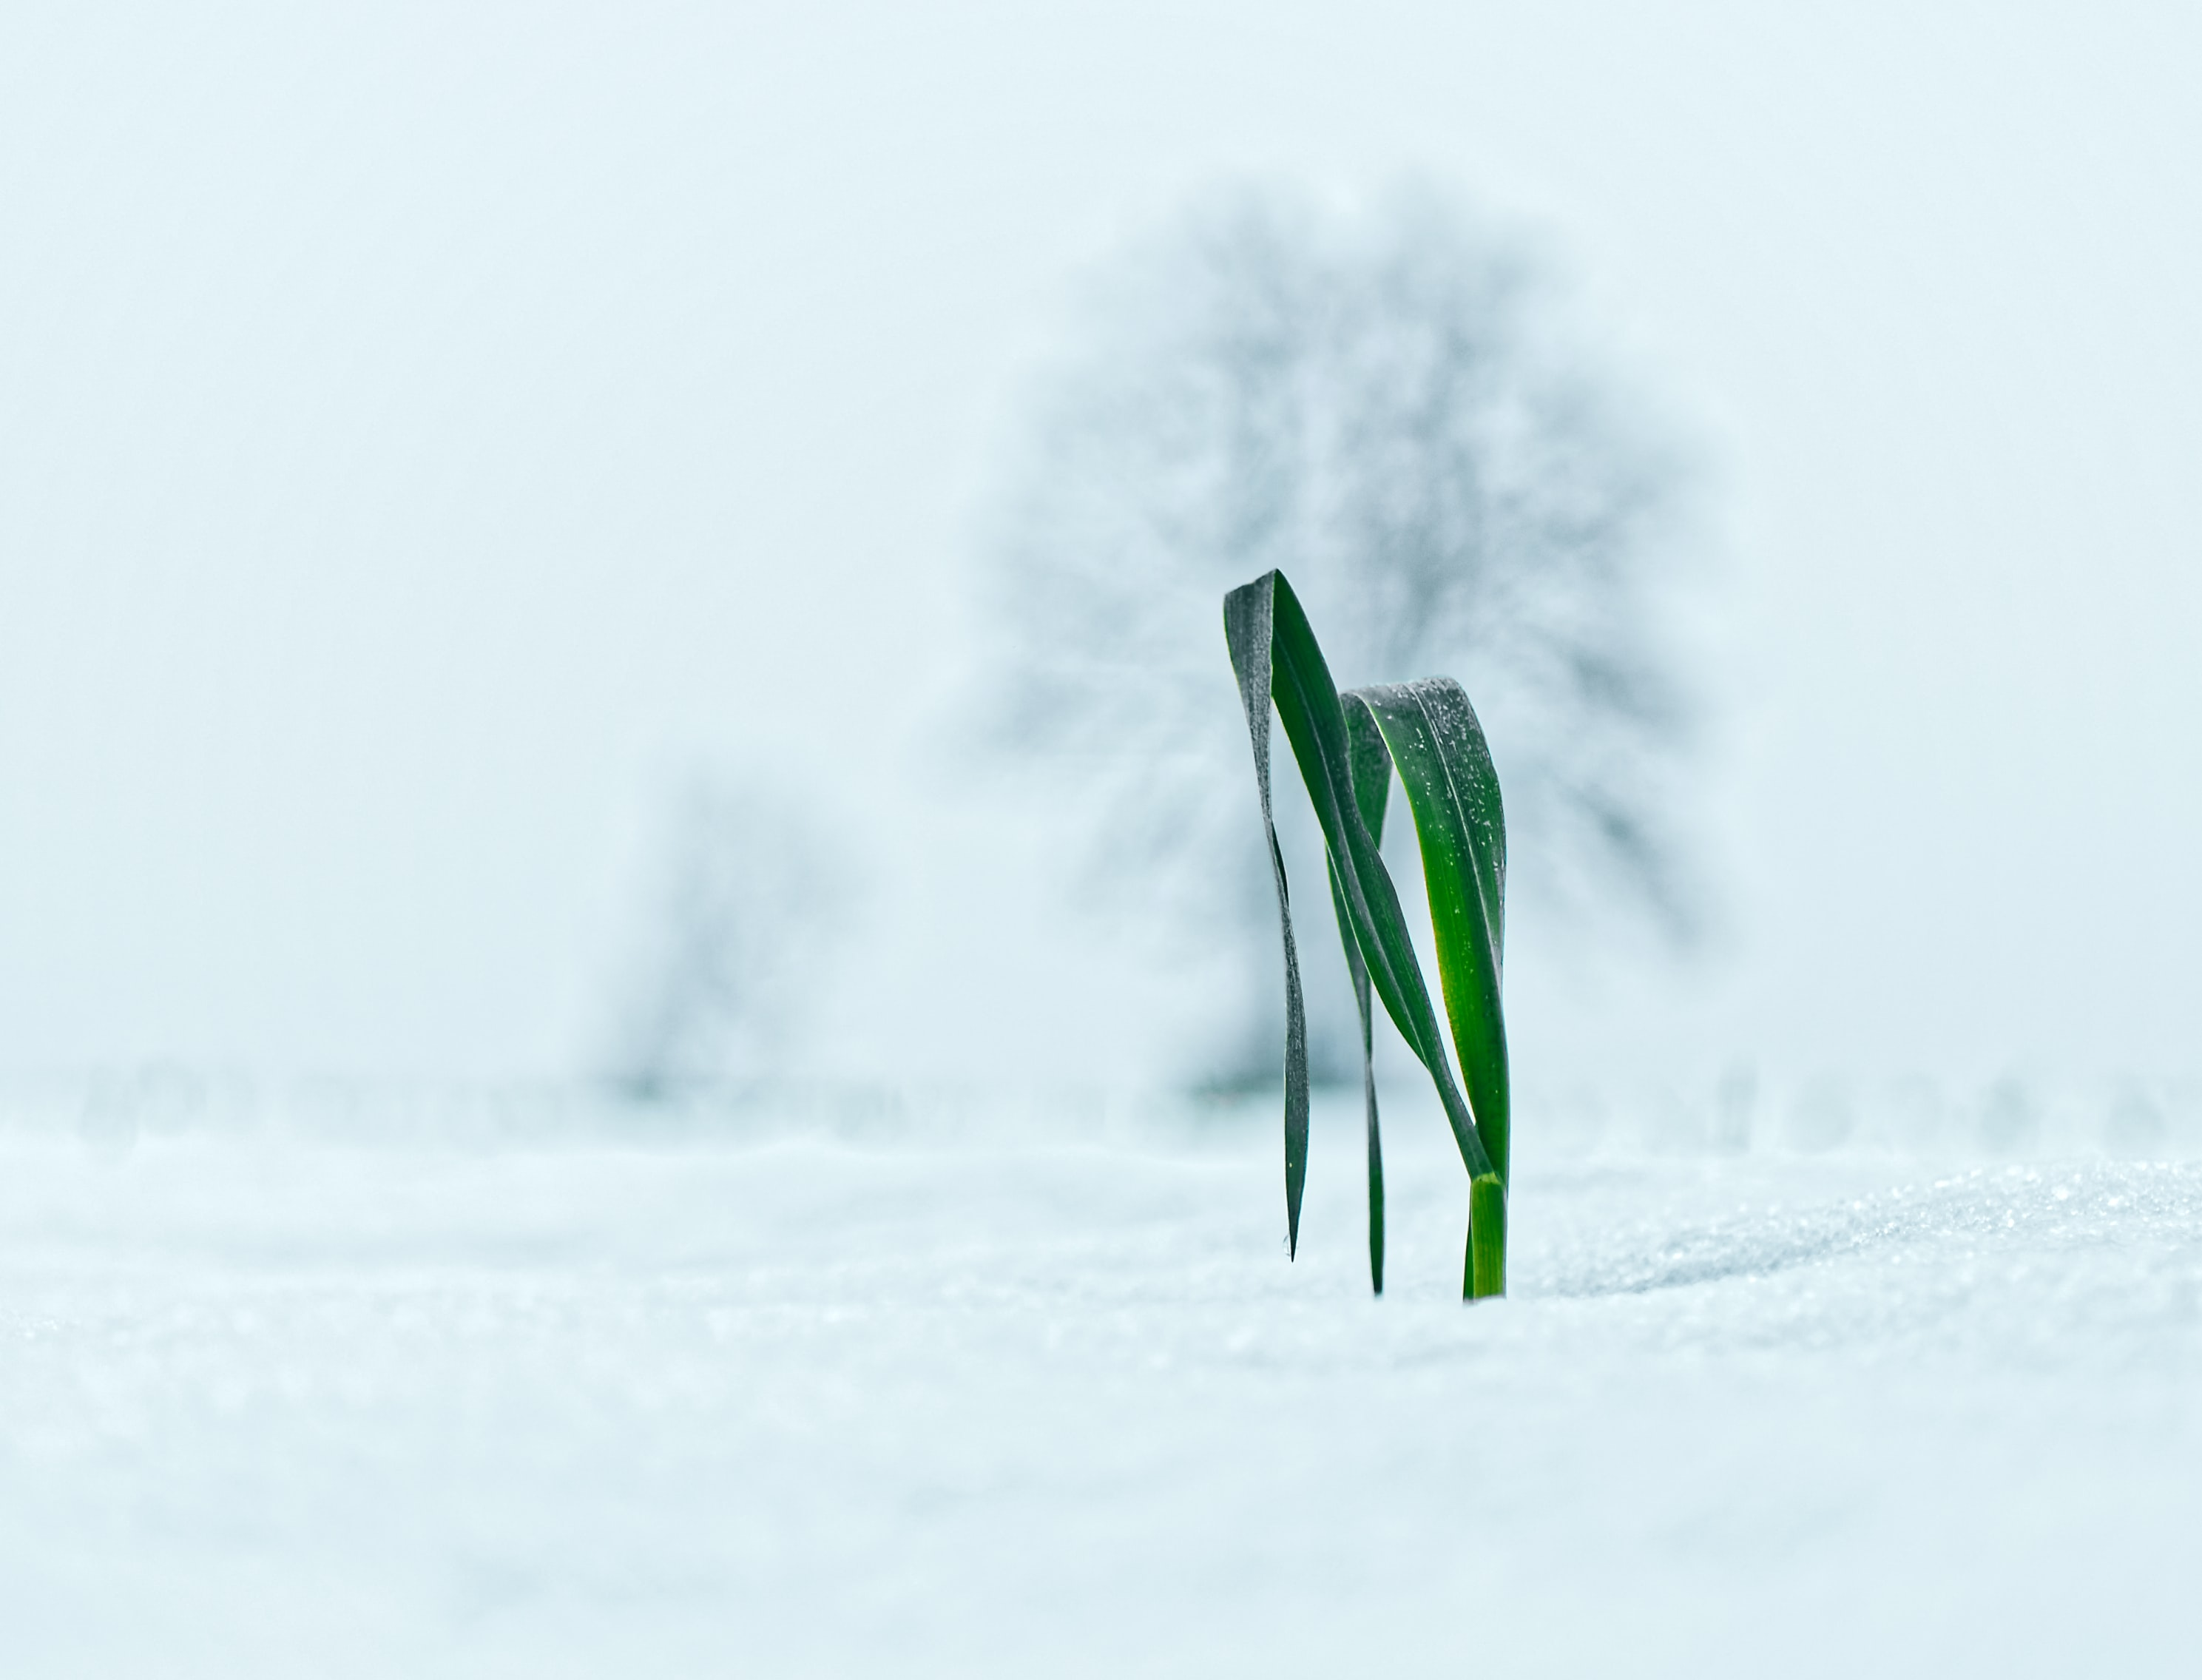 green leafed plant sprouted on icy field